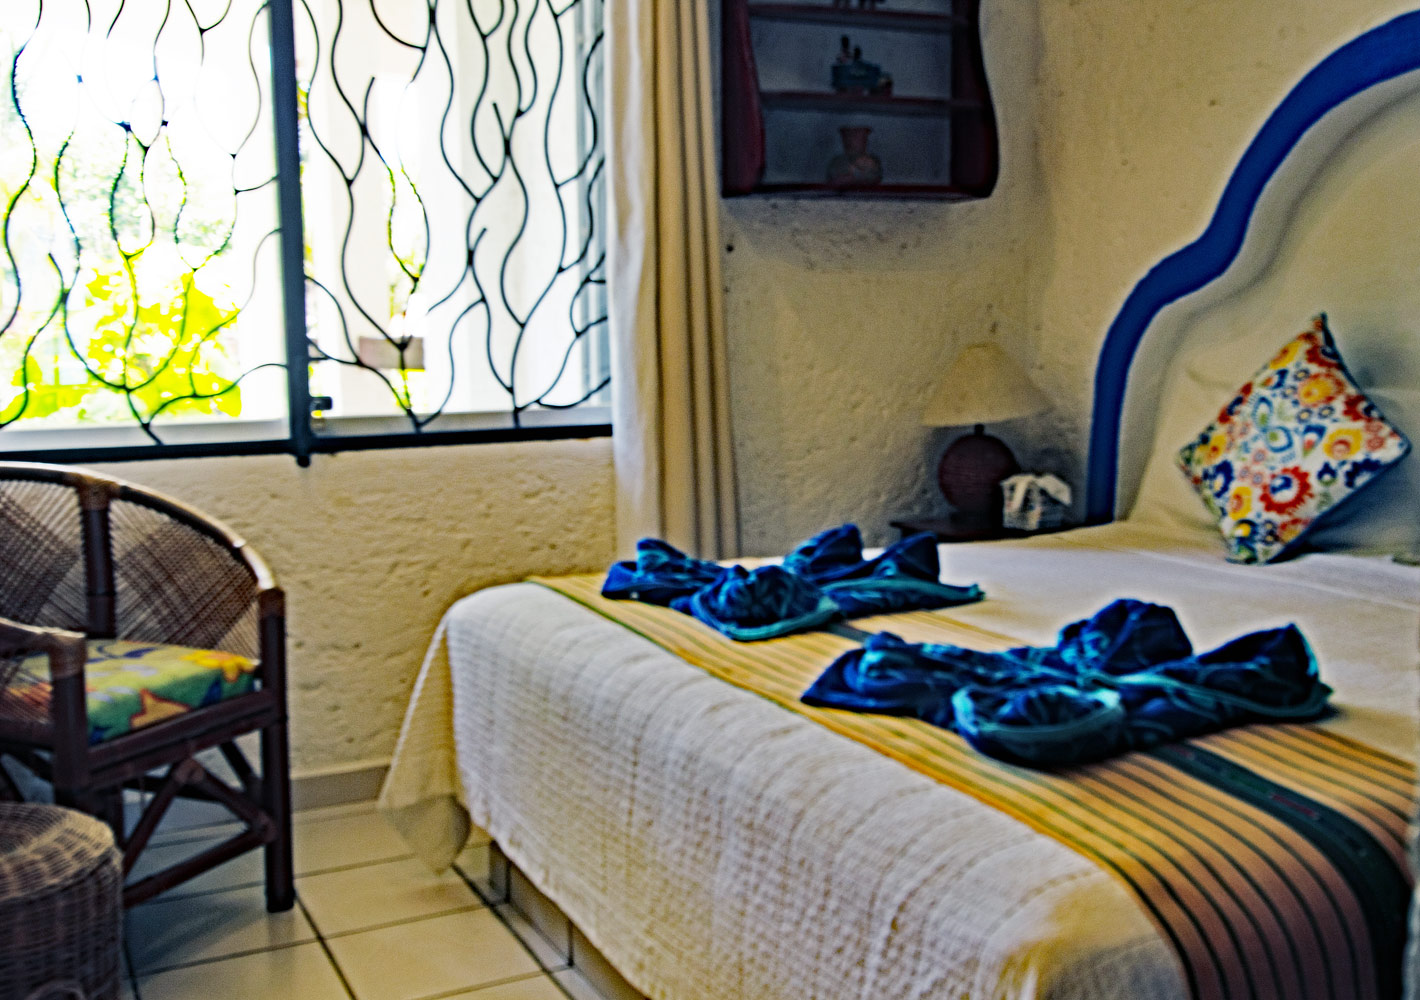 LauritaMar, La Sirena 2: The 2nd Bedroom is Light and Airy with a Full King Bed